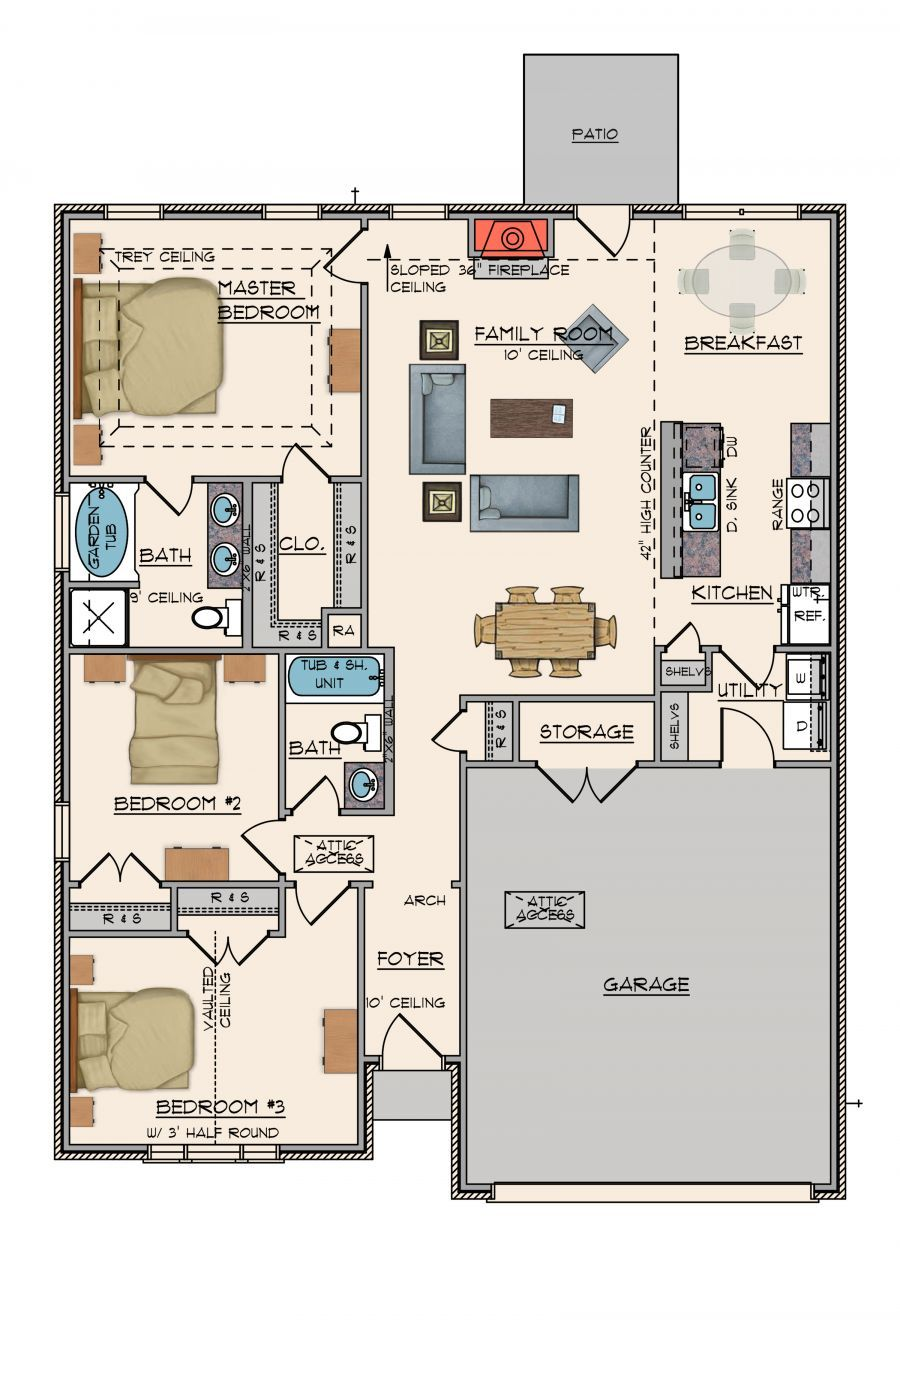 Goodwyn homes sweetbay plan floor plan in al for Home builders in alabama floor plans